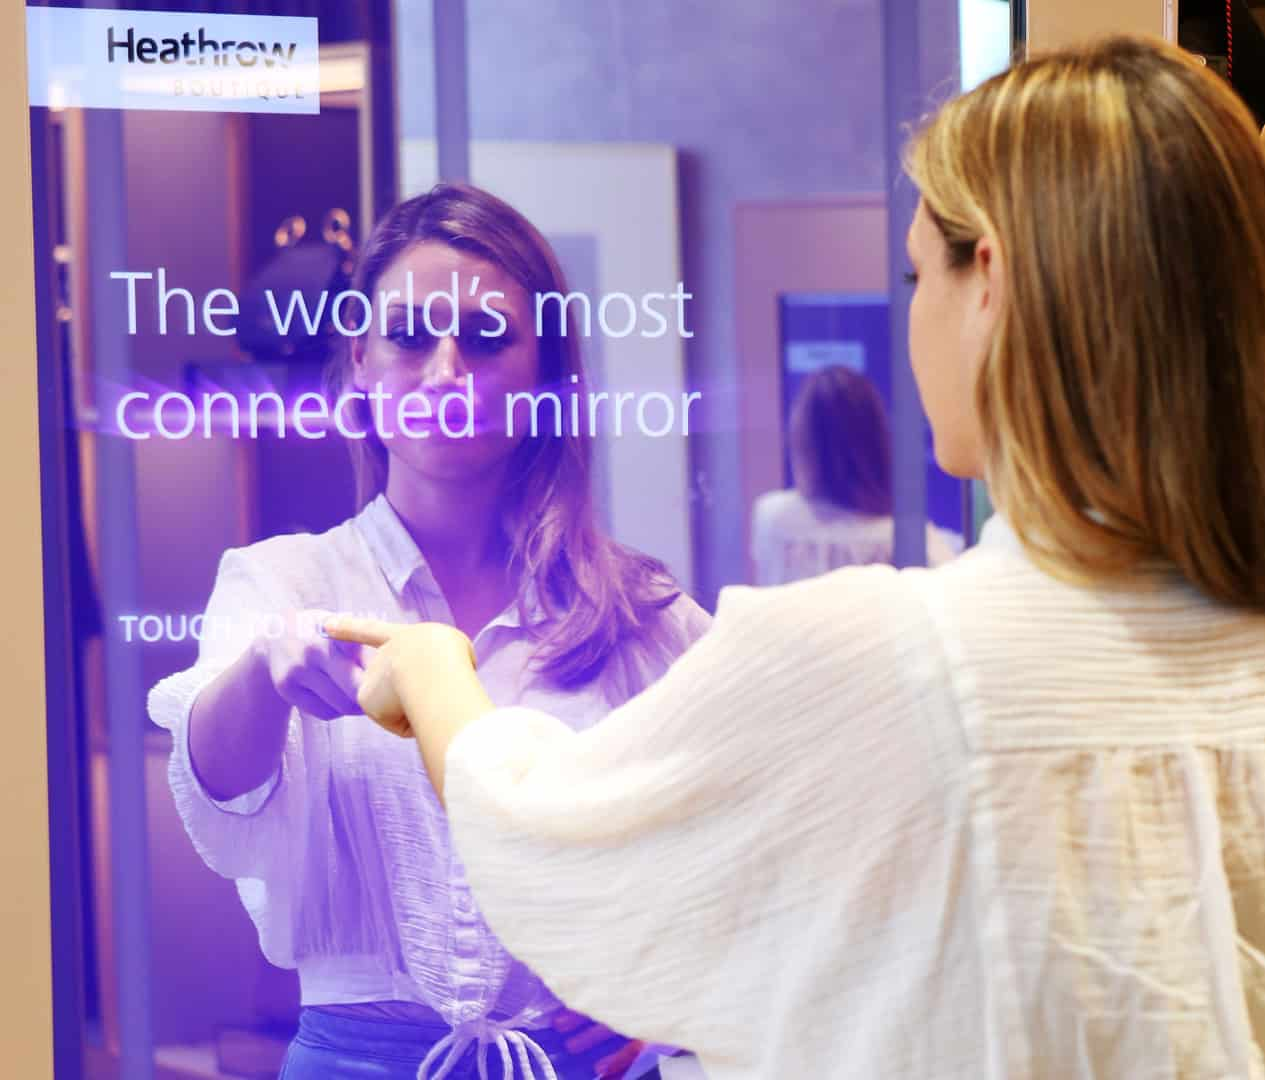 The worlds most connected mirror